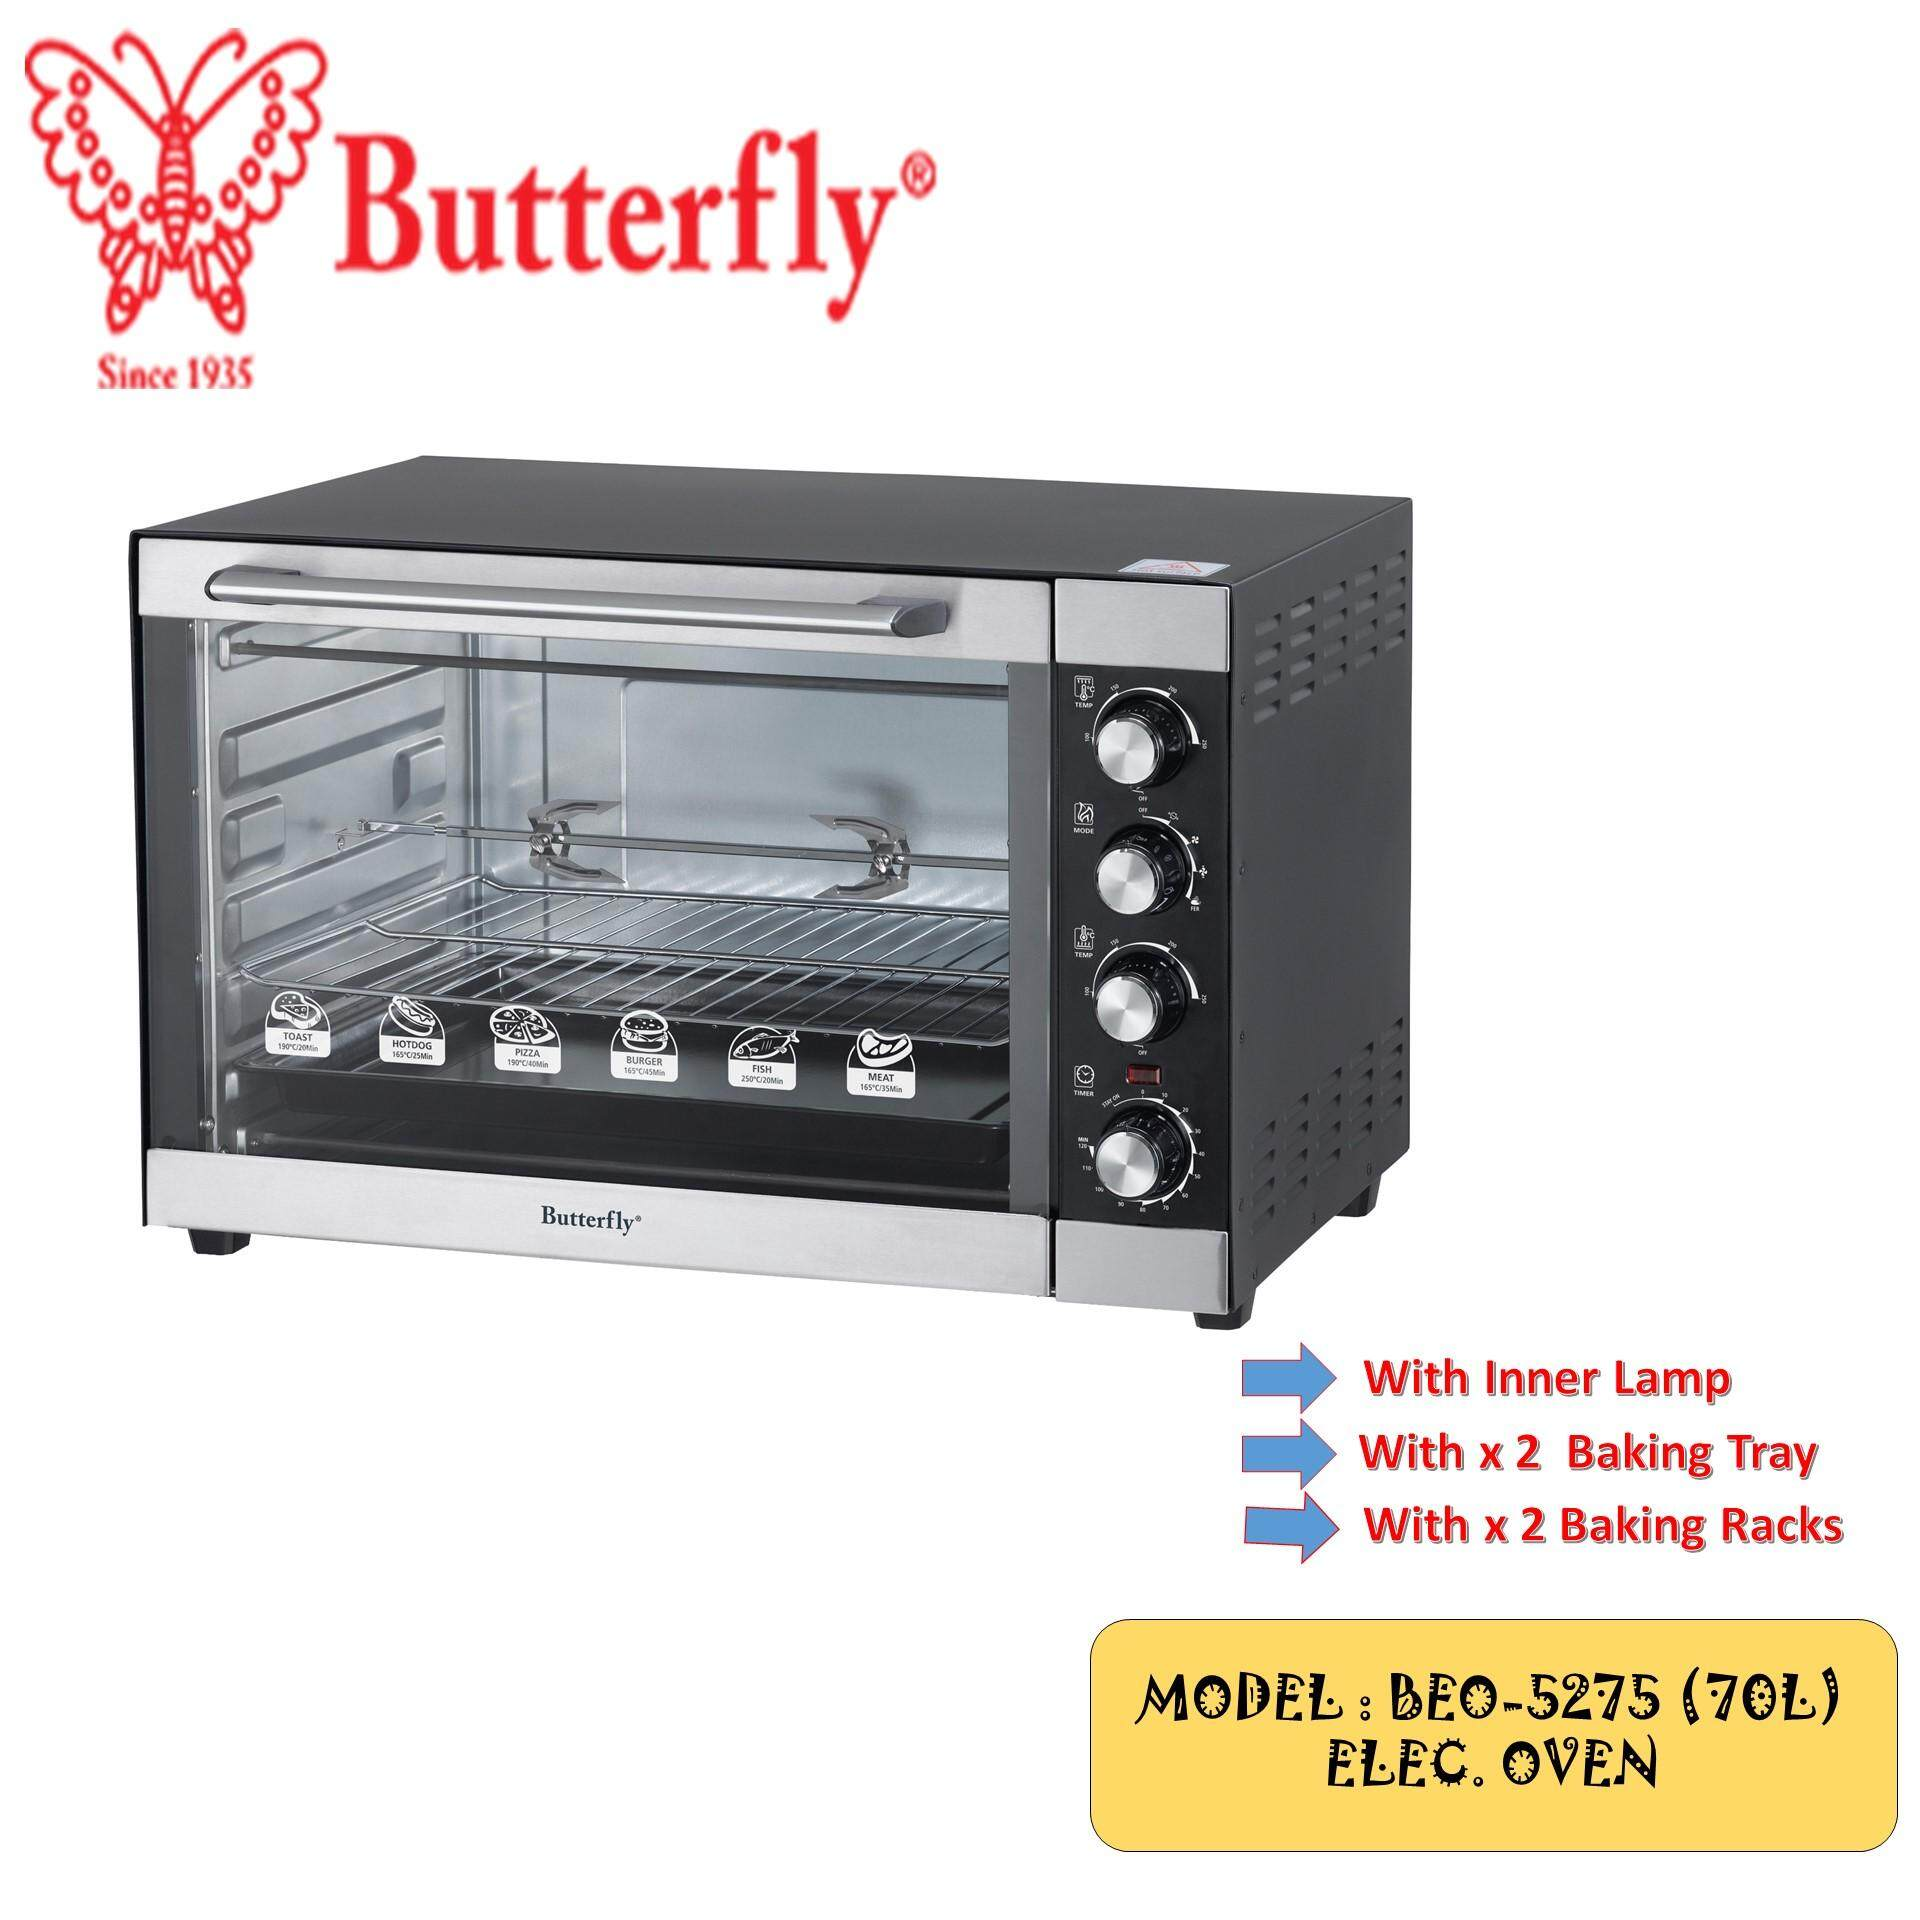 Gambar Oven Gas Butterfly Electric Oven 70l Beo 5275